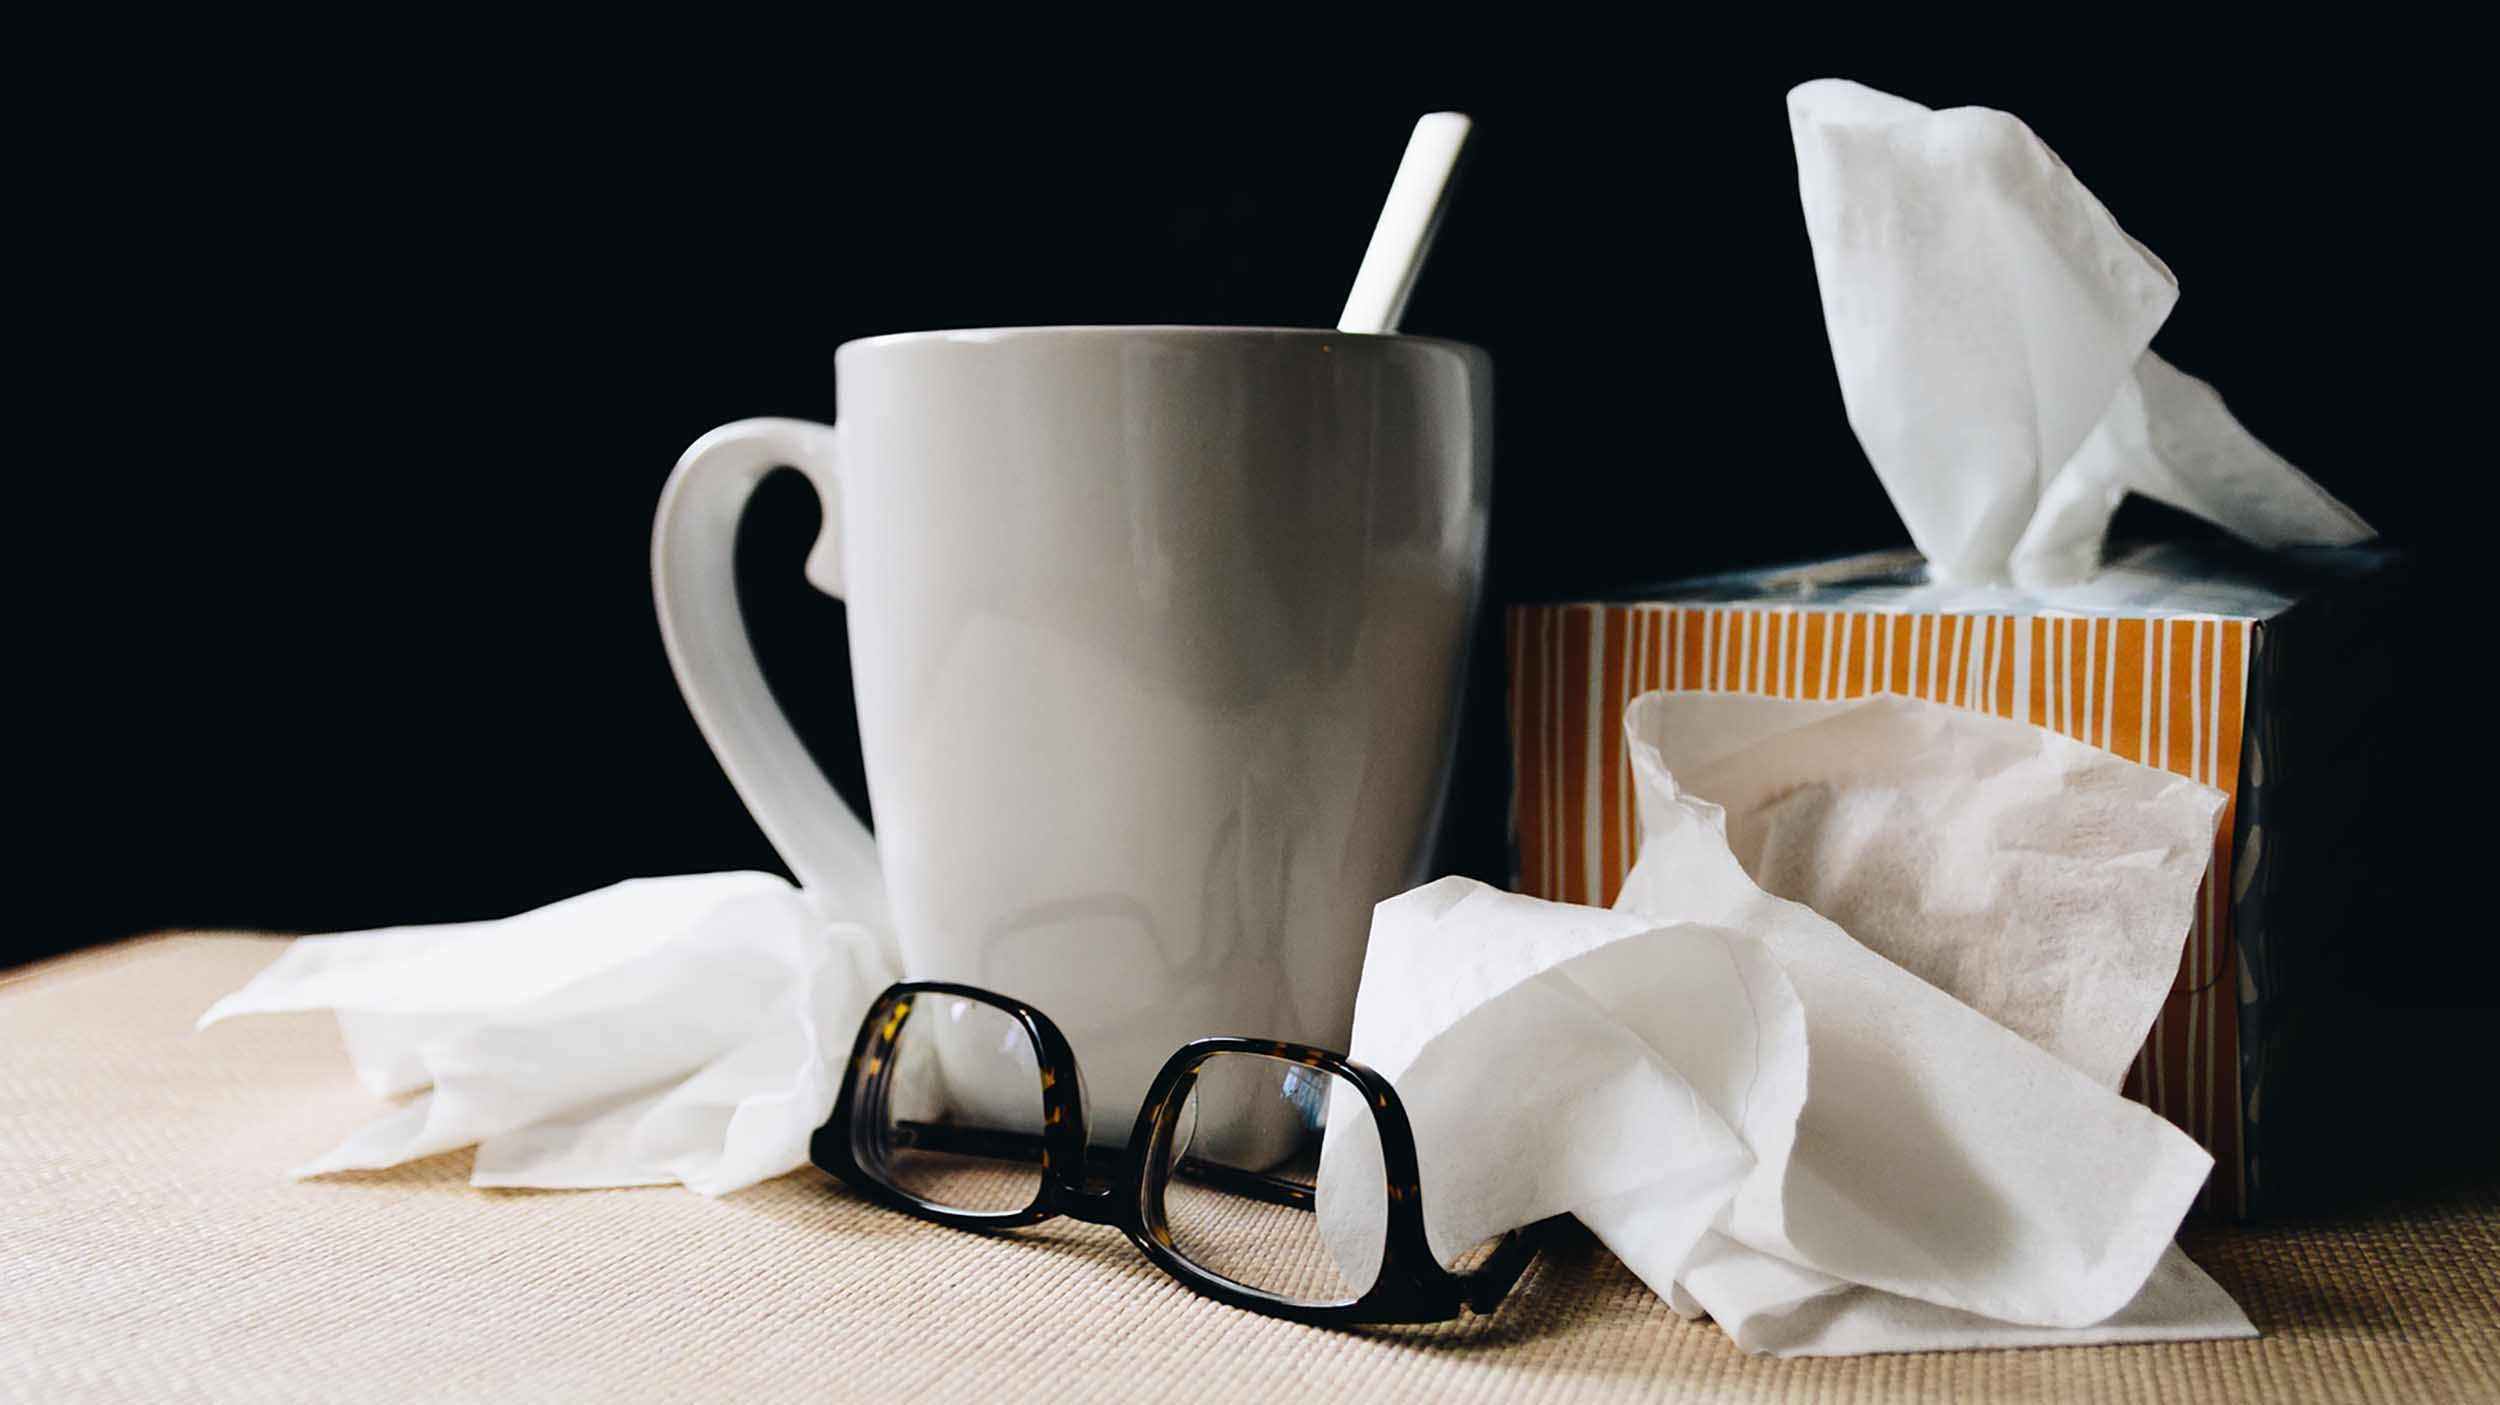 Tissues for the flu season